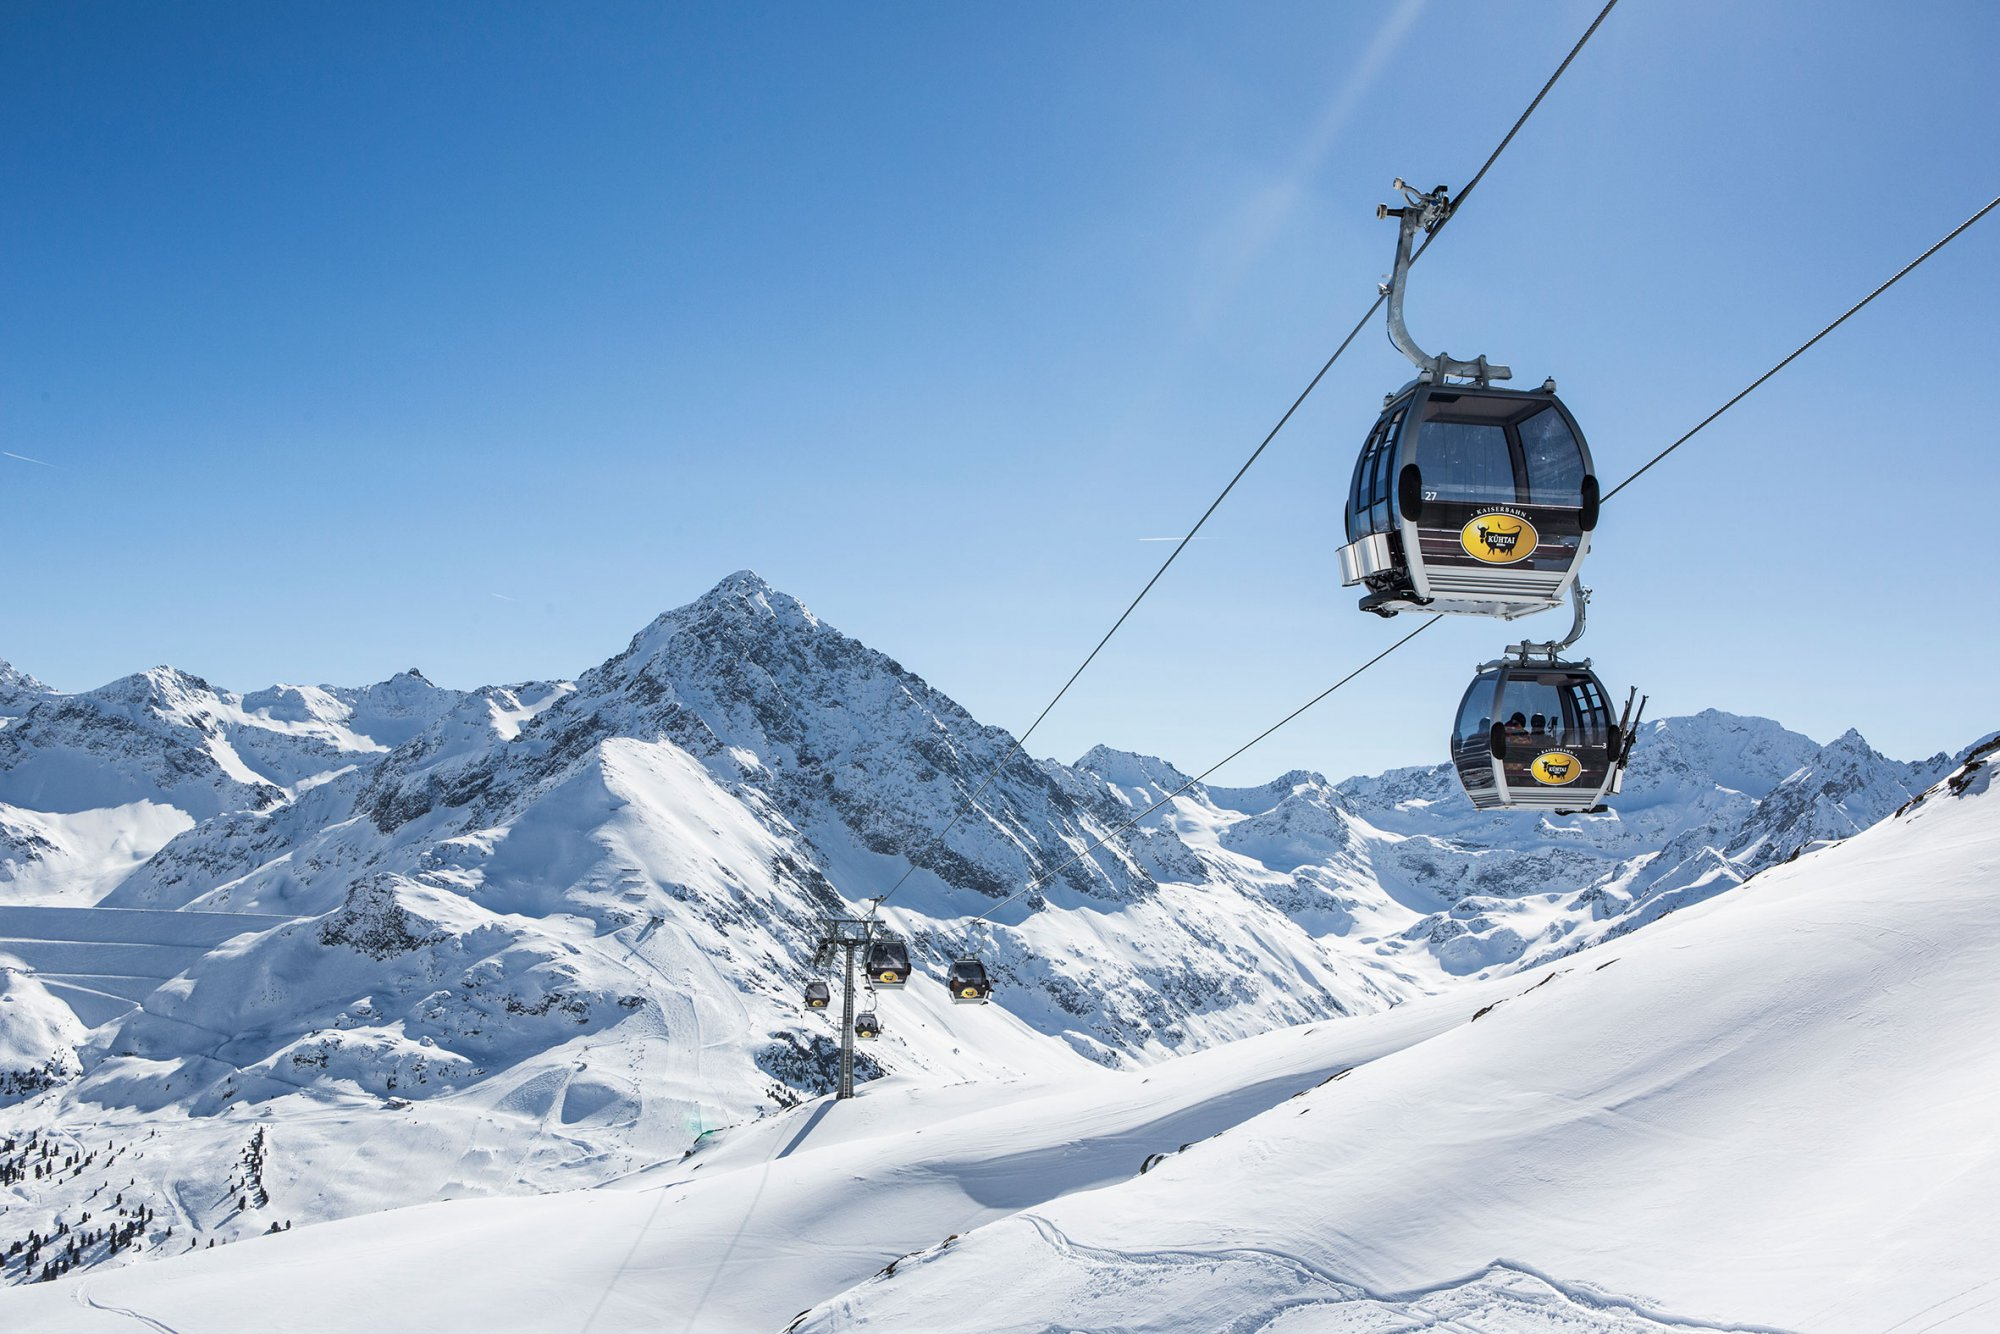 Cutting-edge lifts and cable cars with high capacity